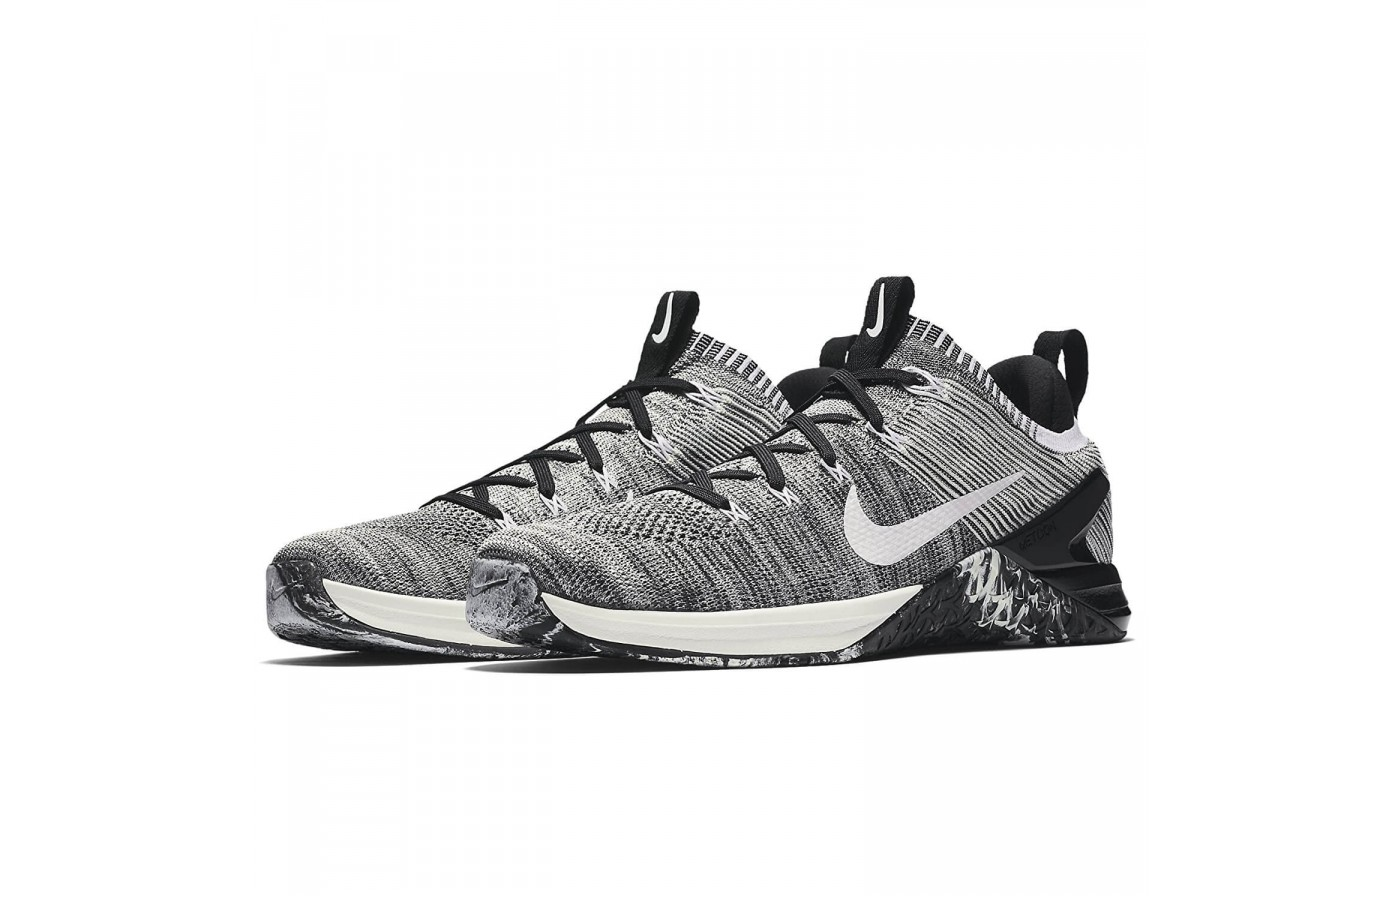 The Nike Metcon DSX Flyknit 2 has a clever rubber wrap around its midsole to ensure users are afforded traction for a multitude of activities